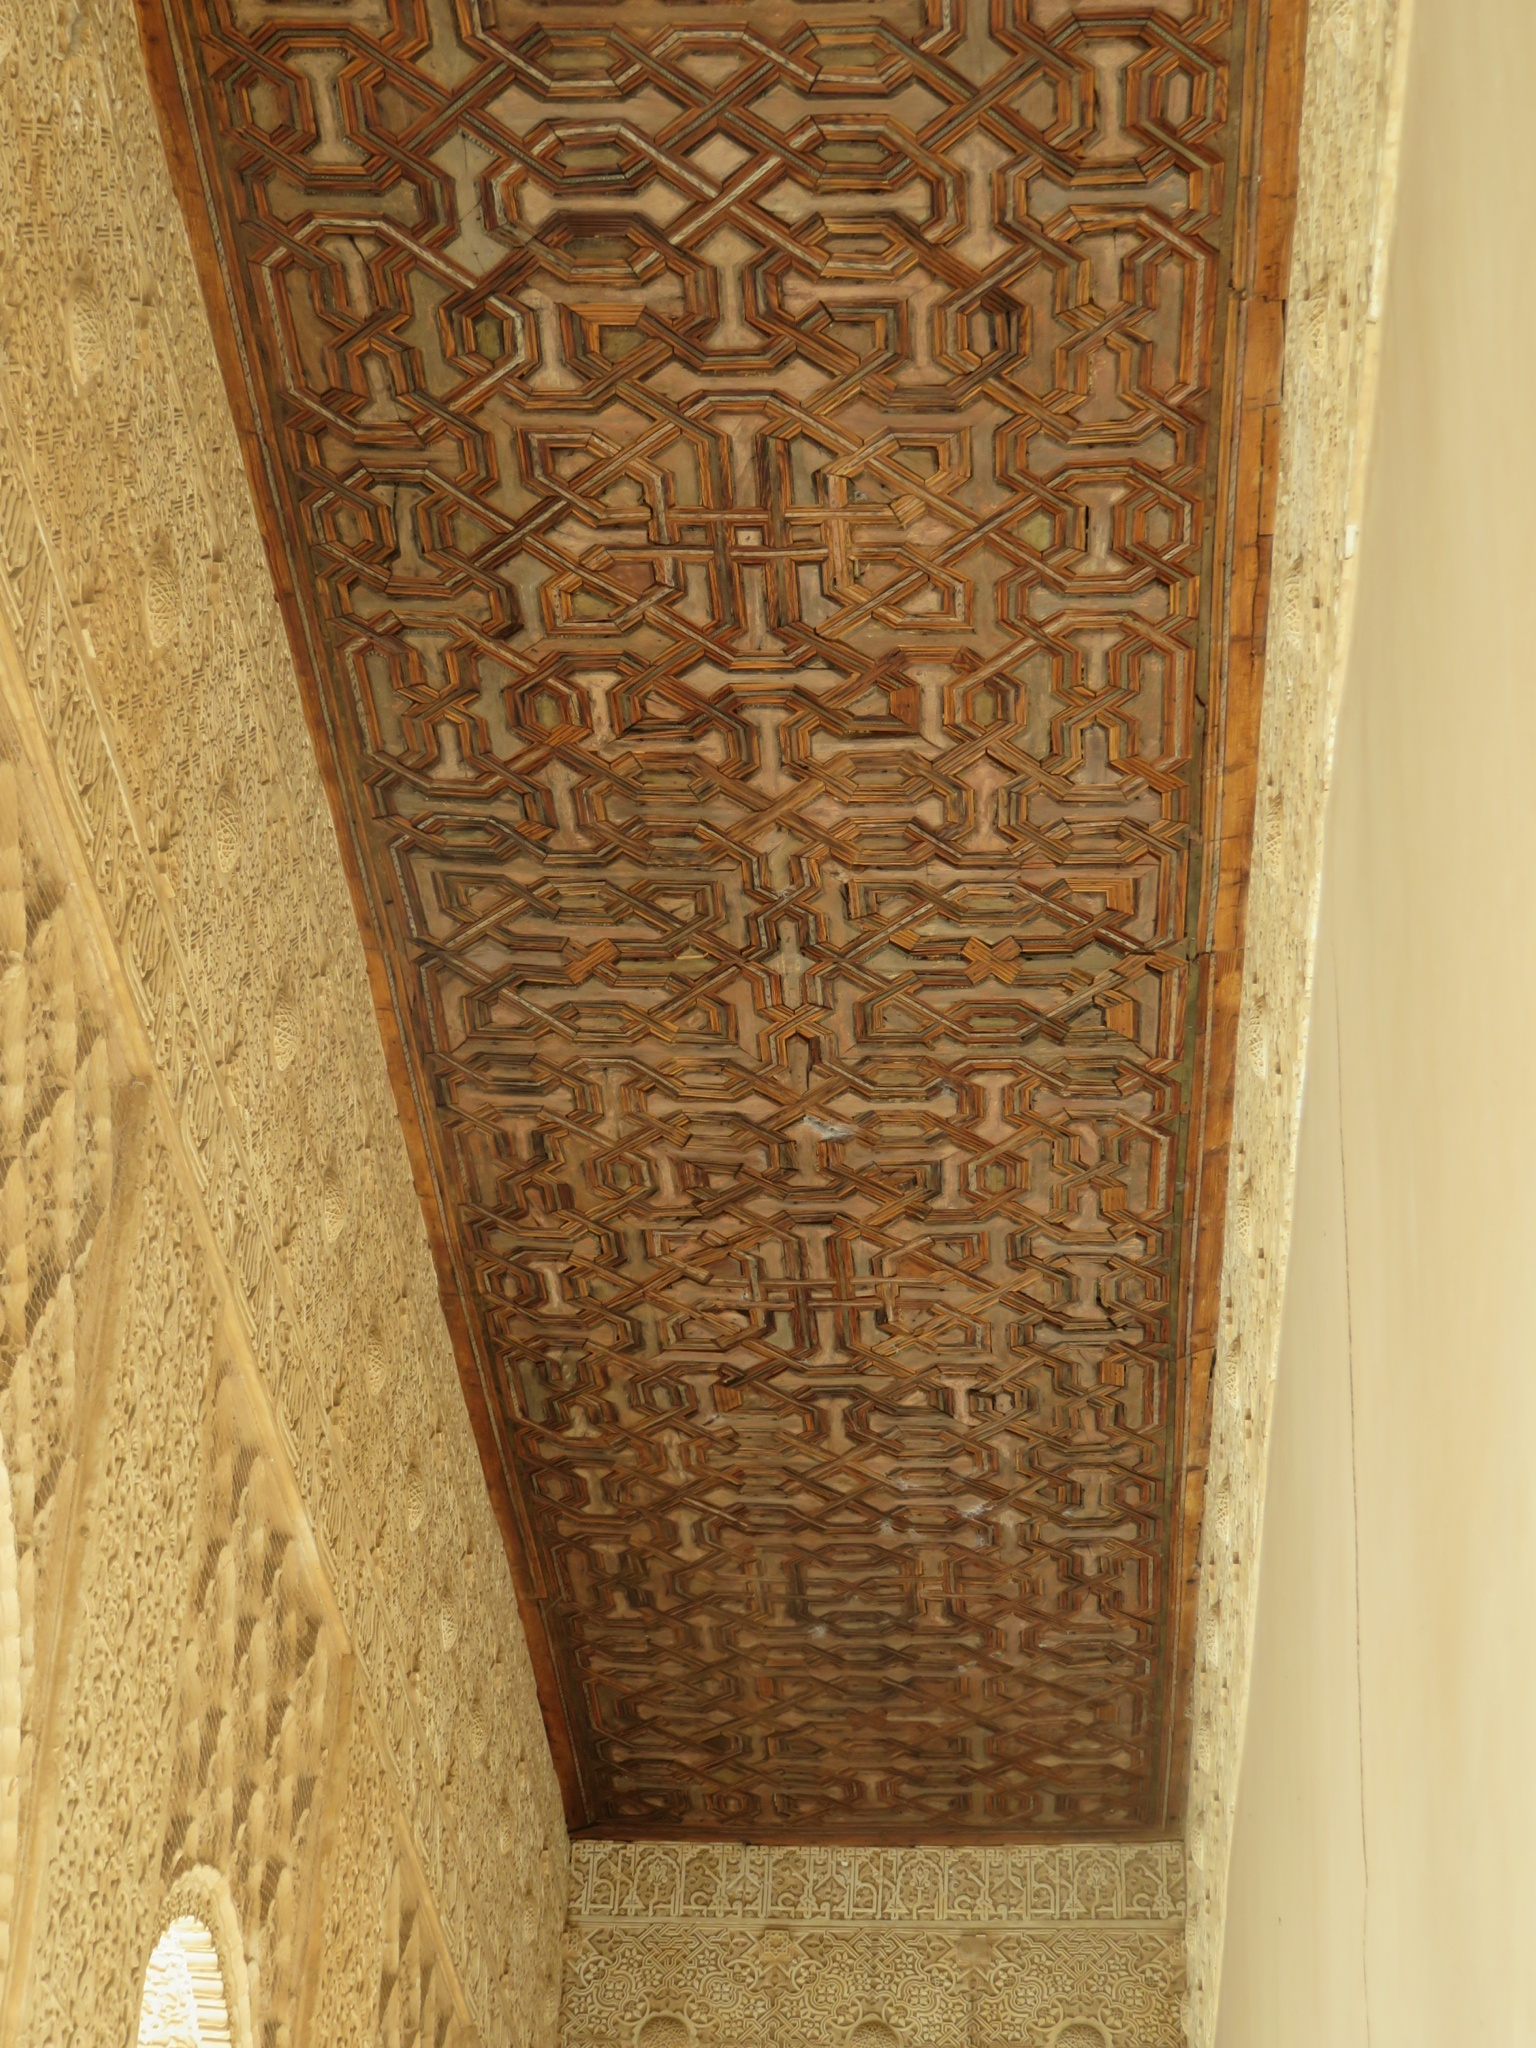 Carved wooden ceilings made in pieces then assembled like a jigsaw puzzle